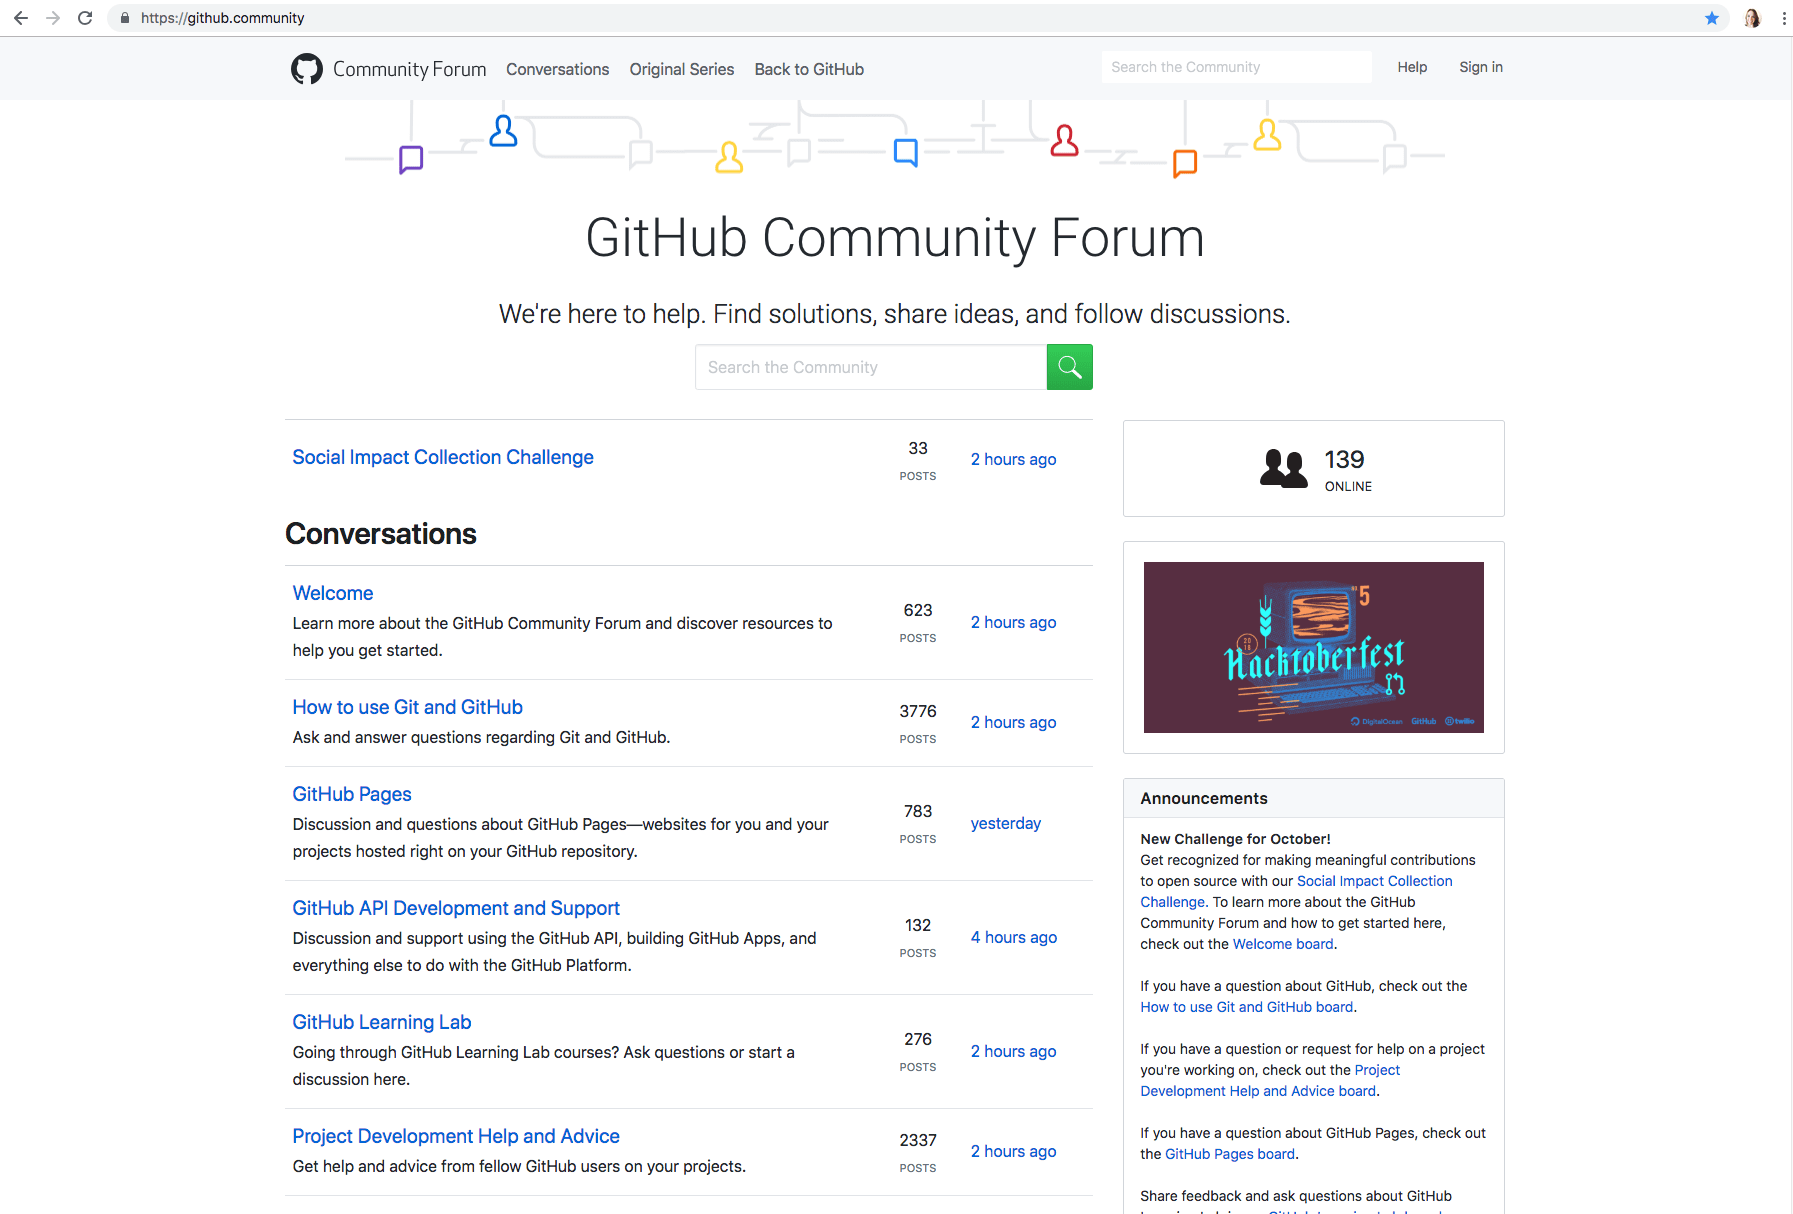 Take a look at the GitHub Community Forum